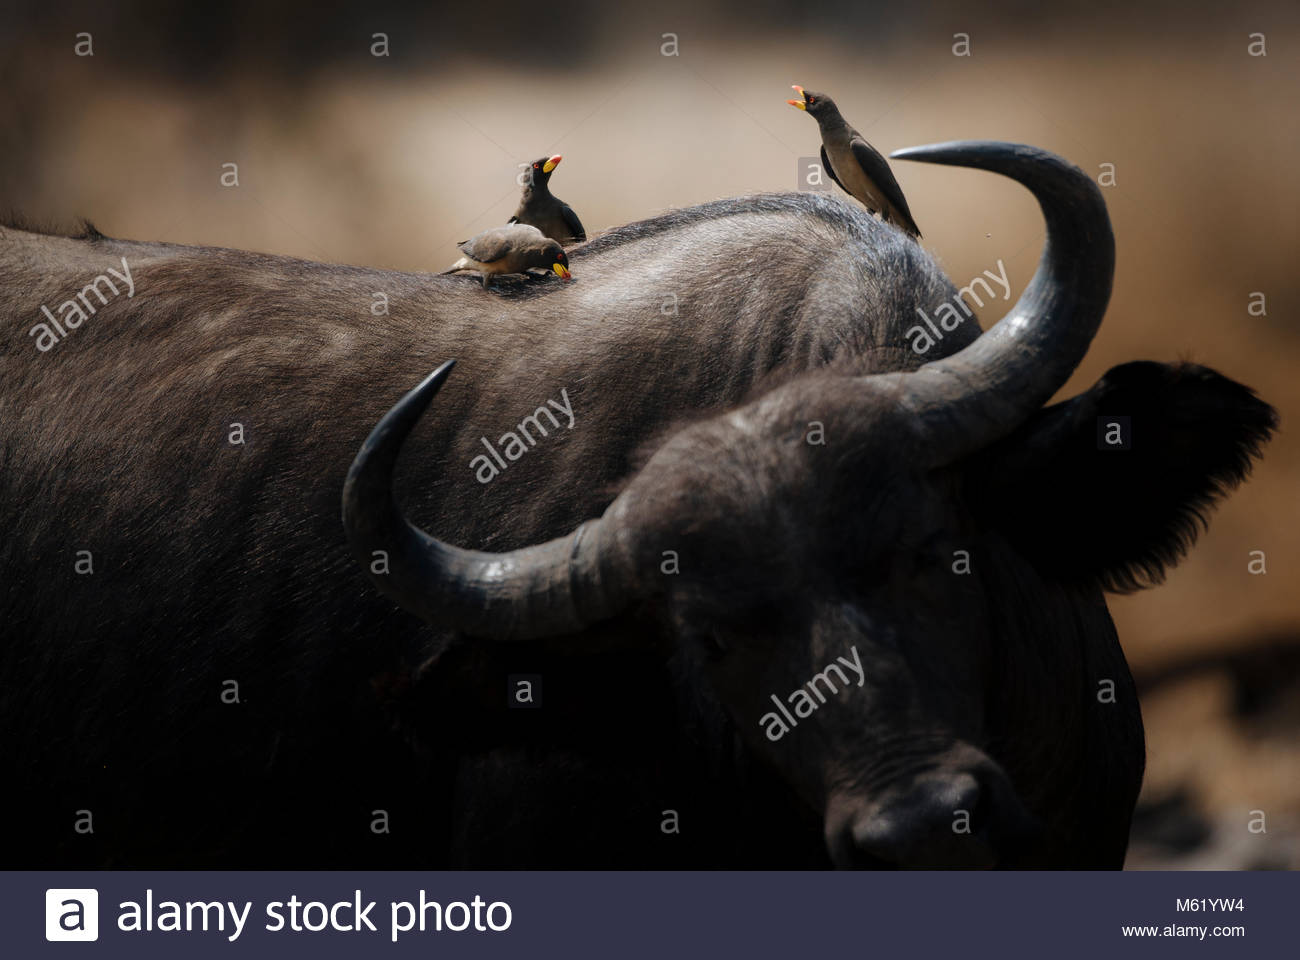 Yellow billed oxpecker, Buphagus africanus, birds perch on the back of a cape buffalo. - Stock Image